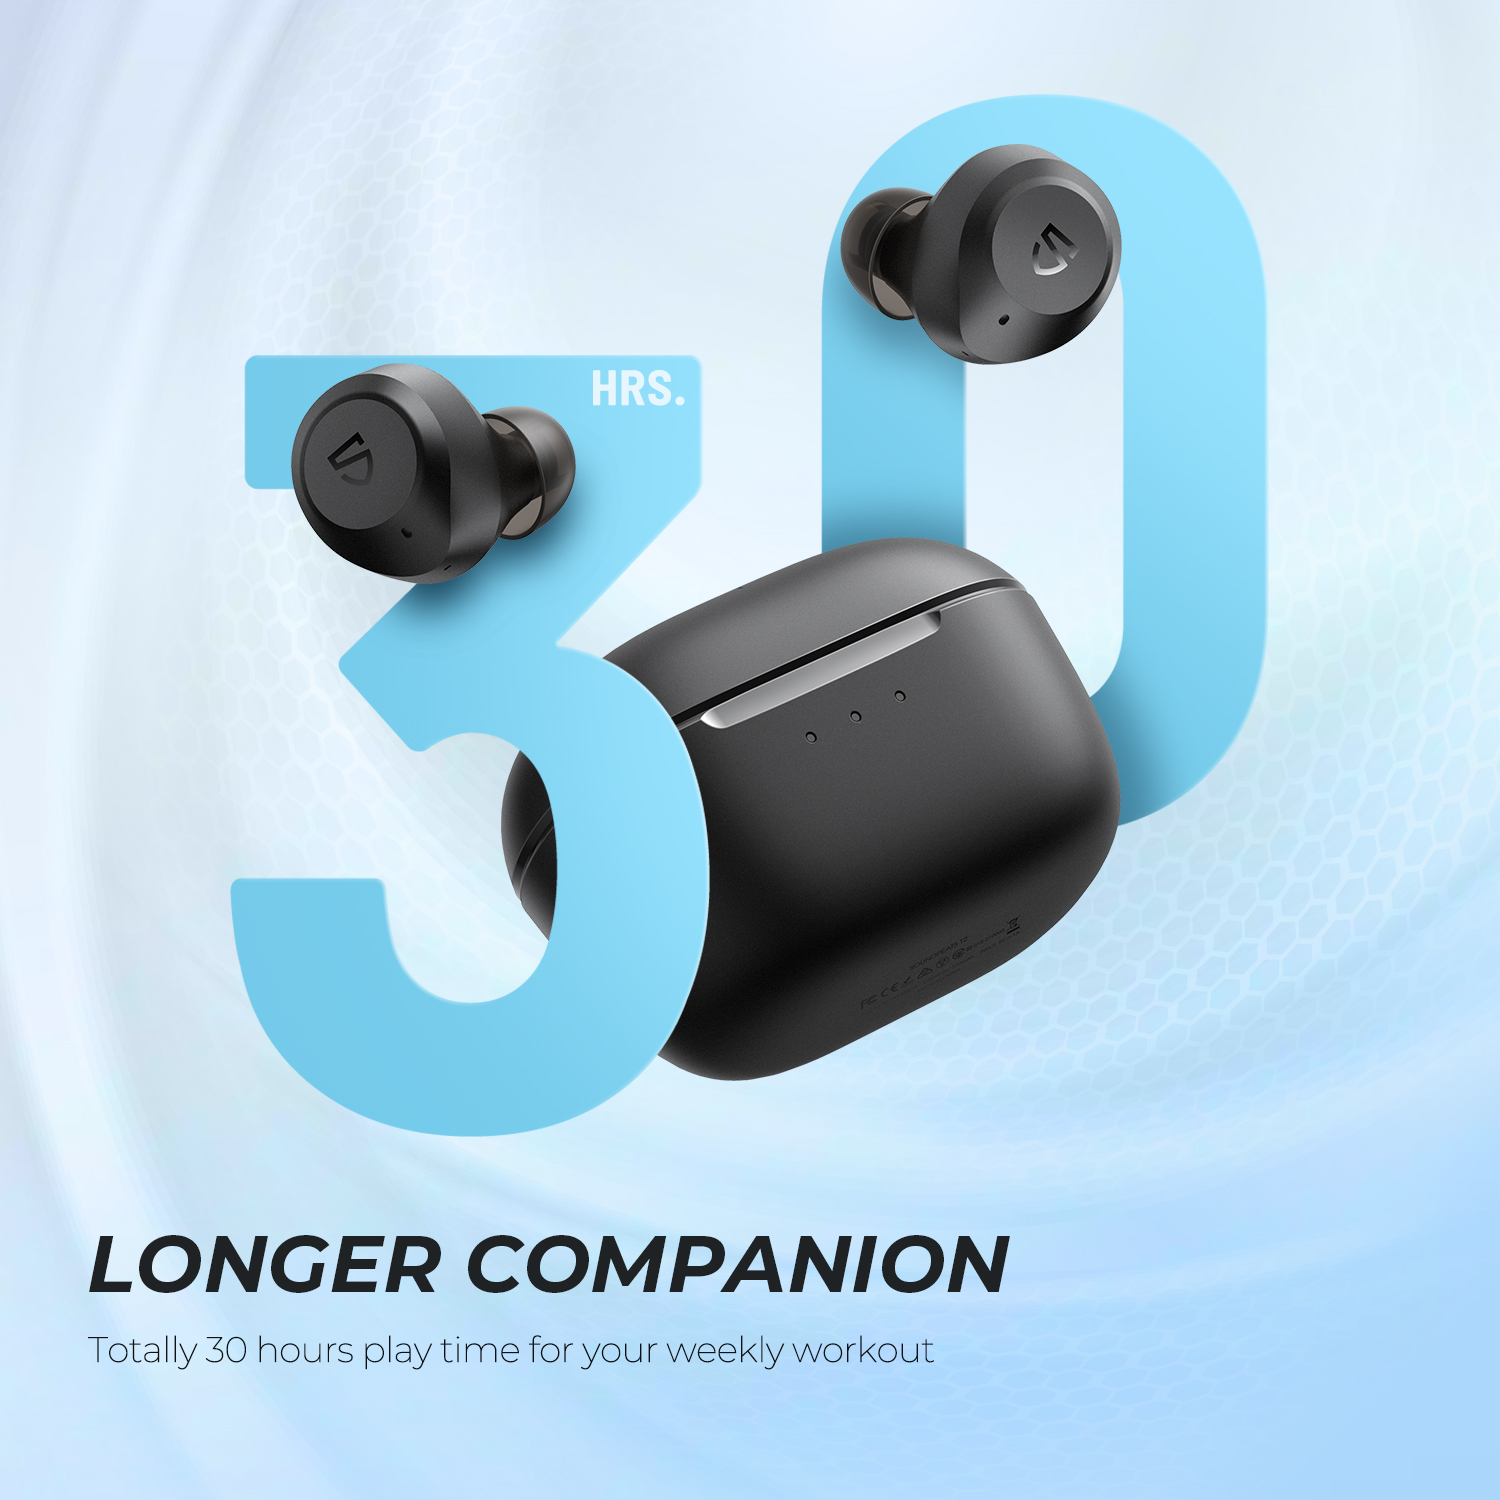 Soundpeats t2 wireless earbuds anc noise cancelling bluetooth v5.1 earphones transparency mode with 12mm large dynamic driver